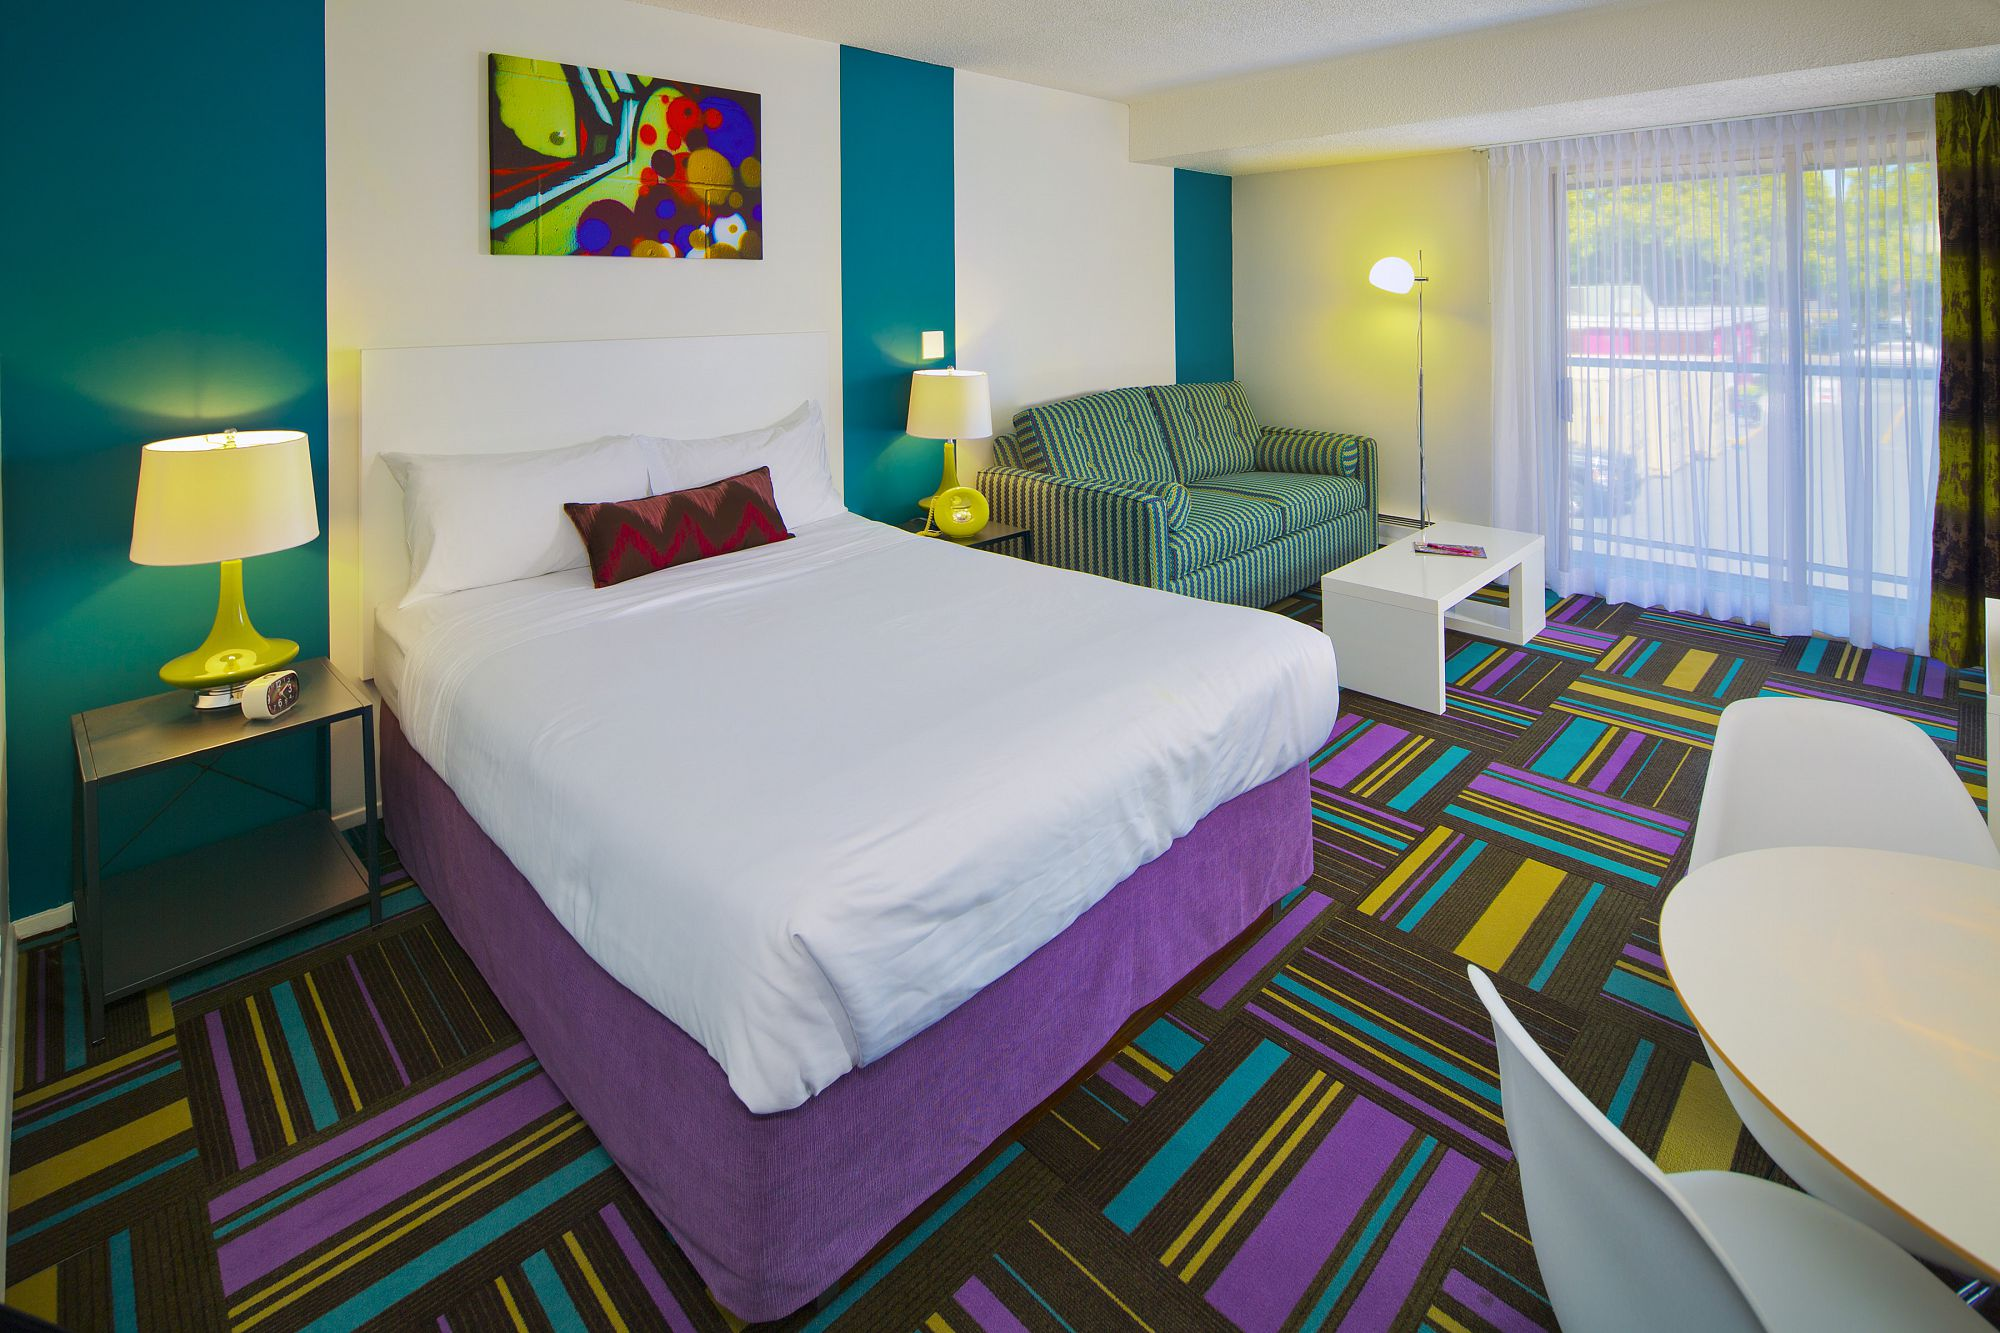 Hotel Zed Is An Edgy Eclectic Modern And Retro